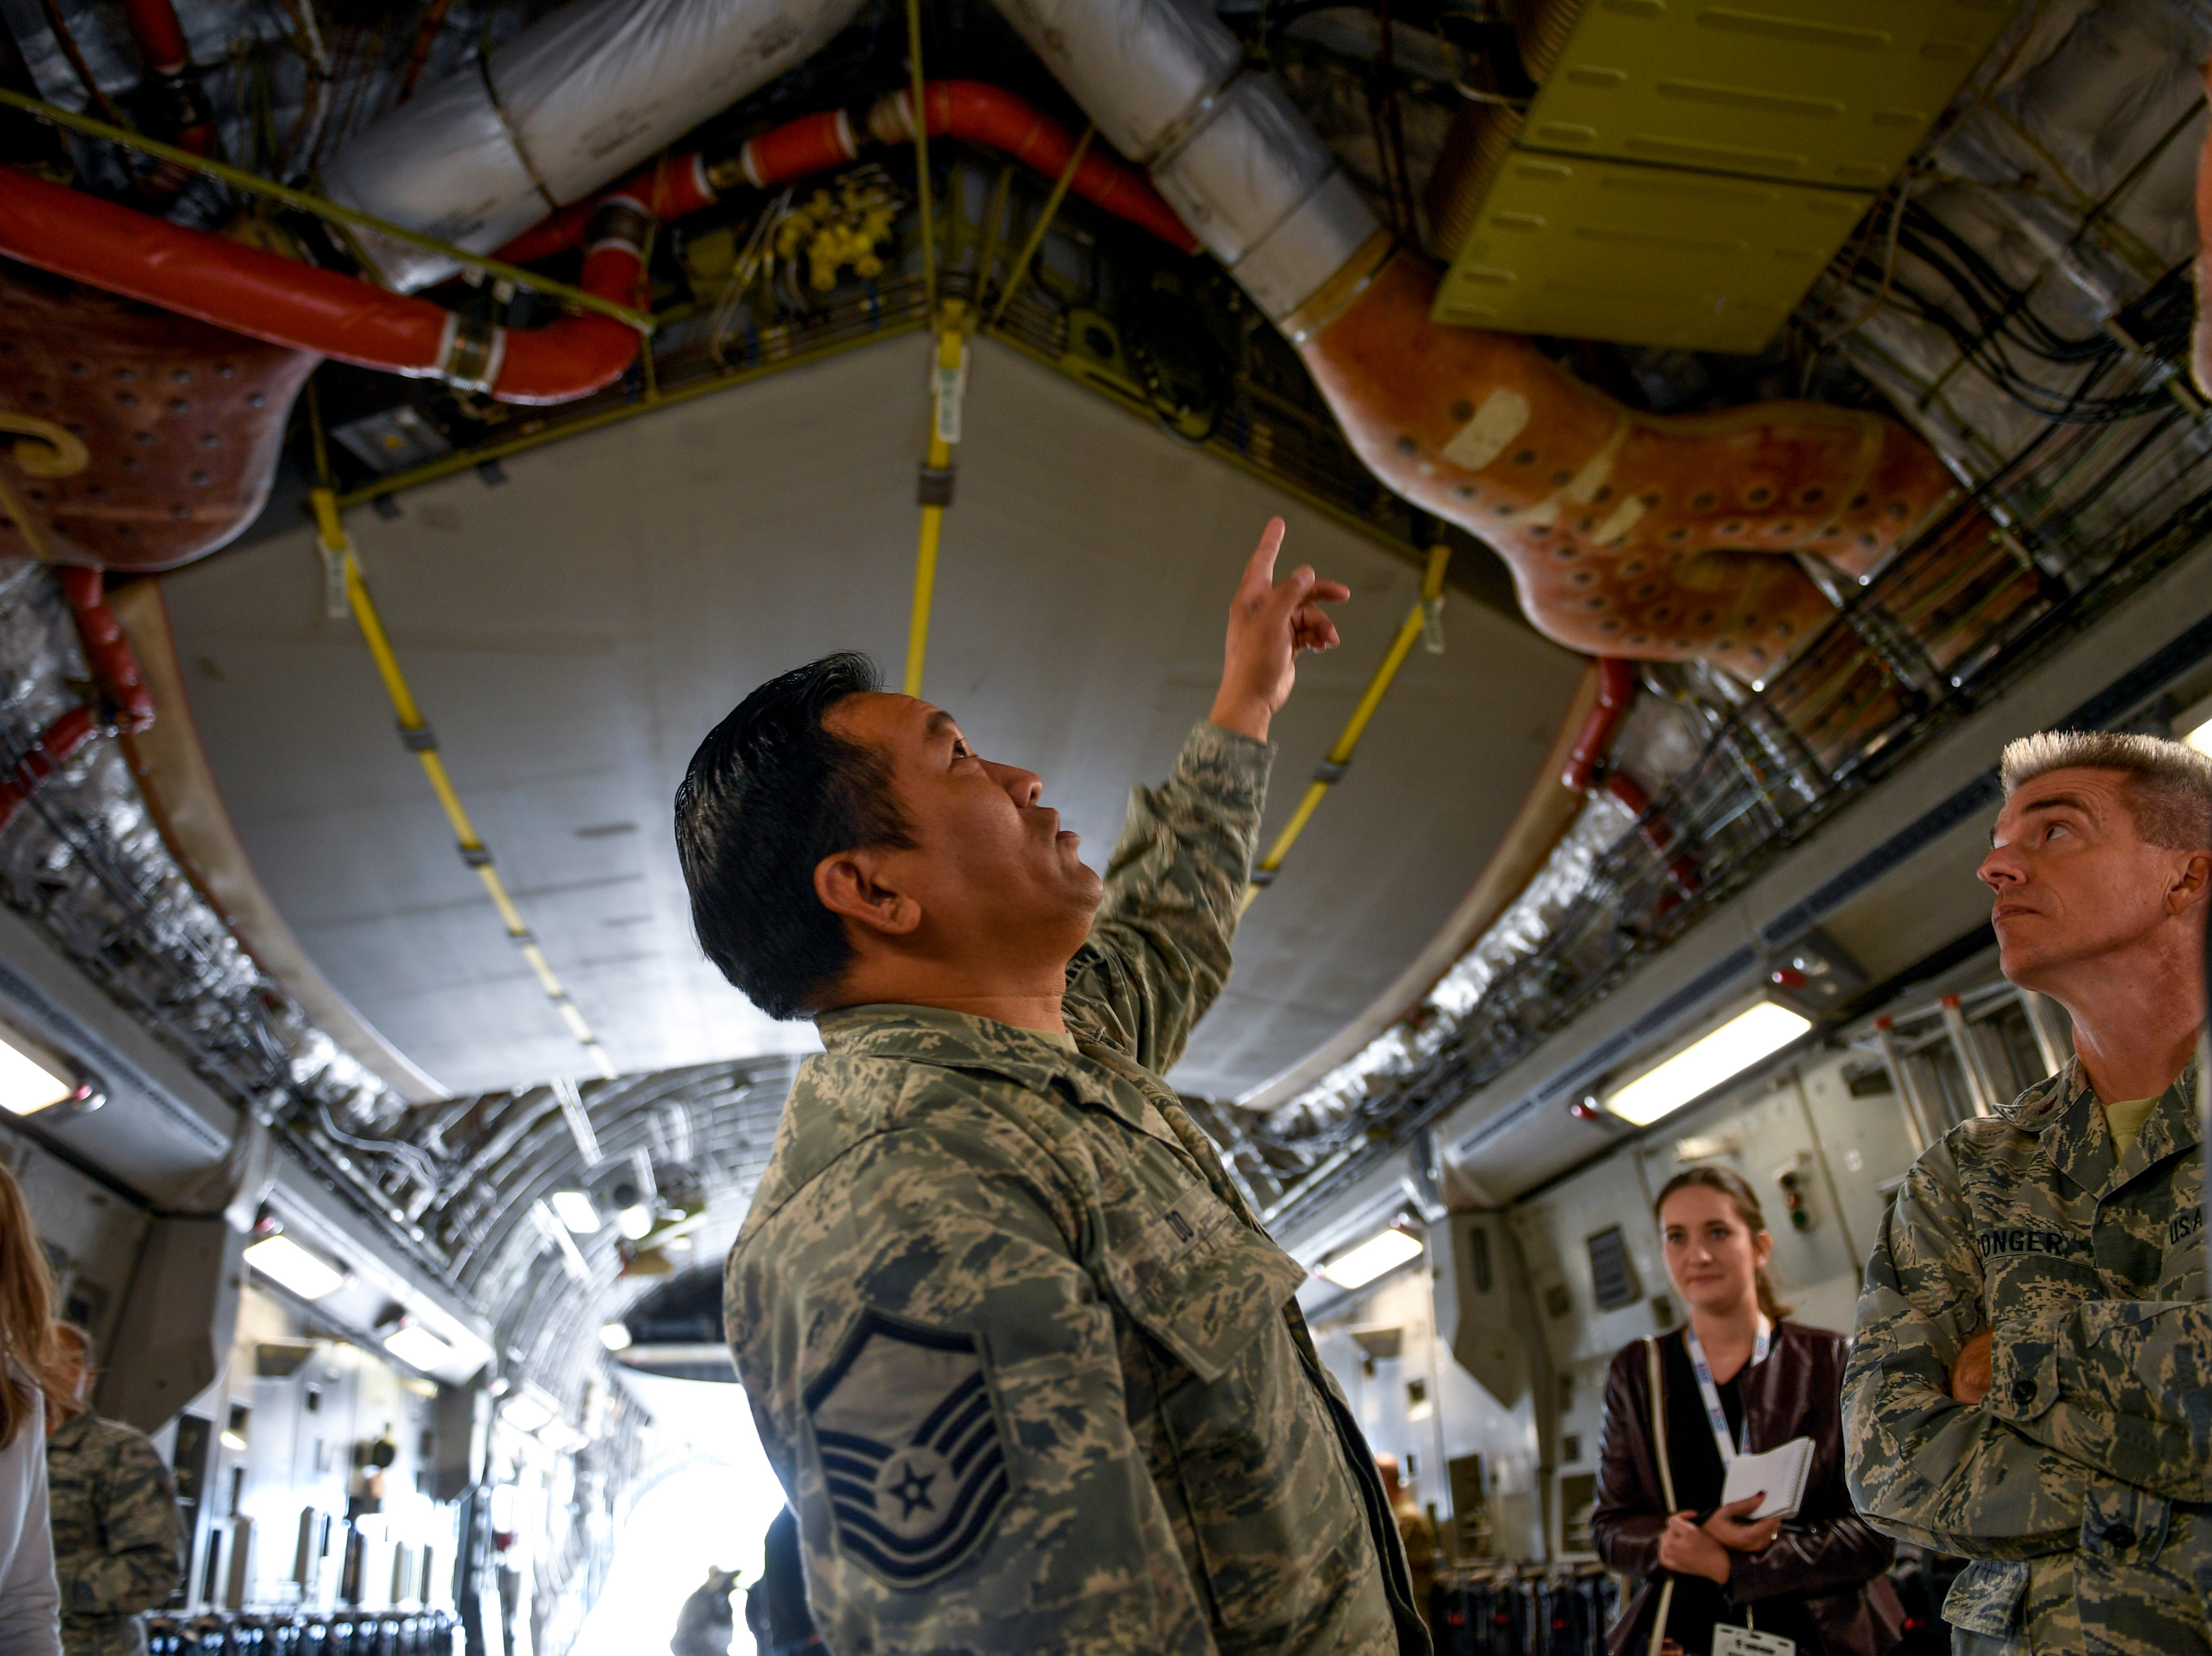 National Guardsmen explain the insides of a C-17 fuselage to attendees during the annual Bosslift event put on by Employer Support of the Guard and Reserve (ESGR) and the Tennessee National Guard at 164th Airlift Wing in Memphis, Tenn., on Thursday, Nov. 8, 2018.